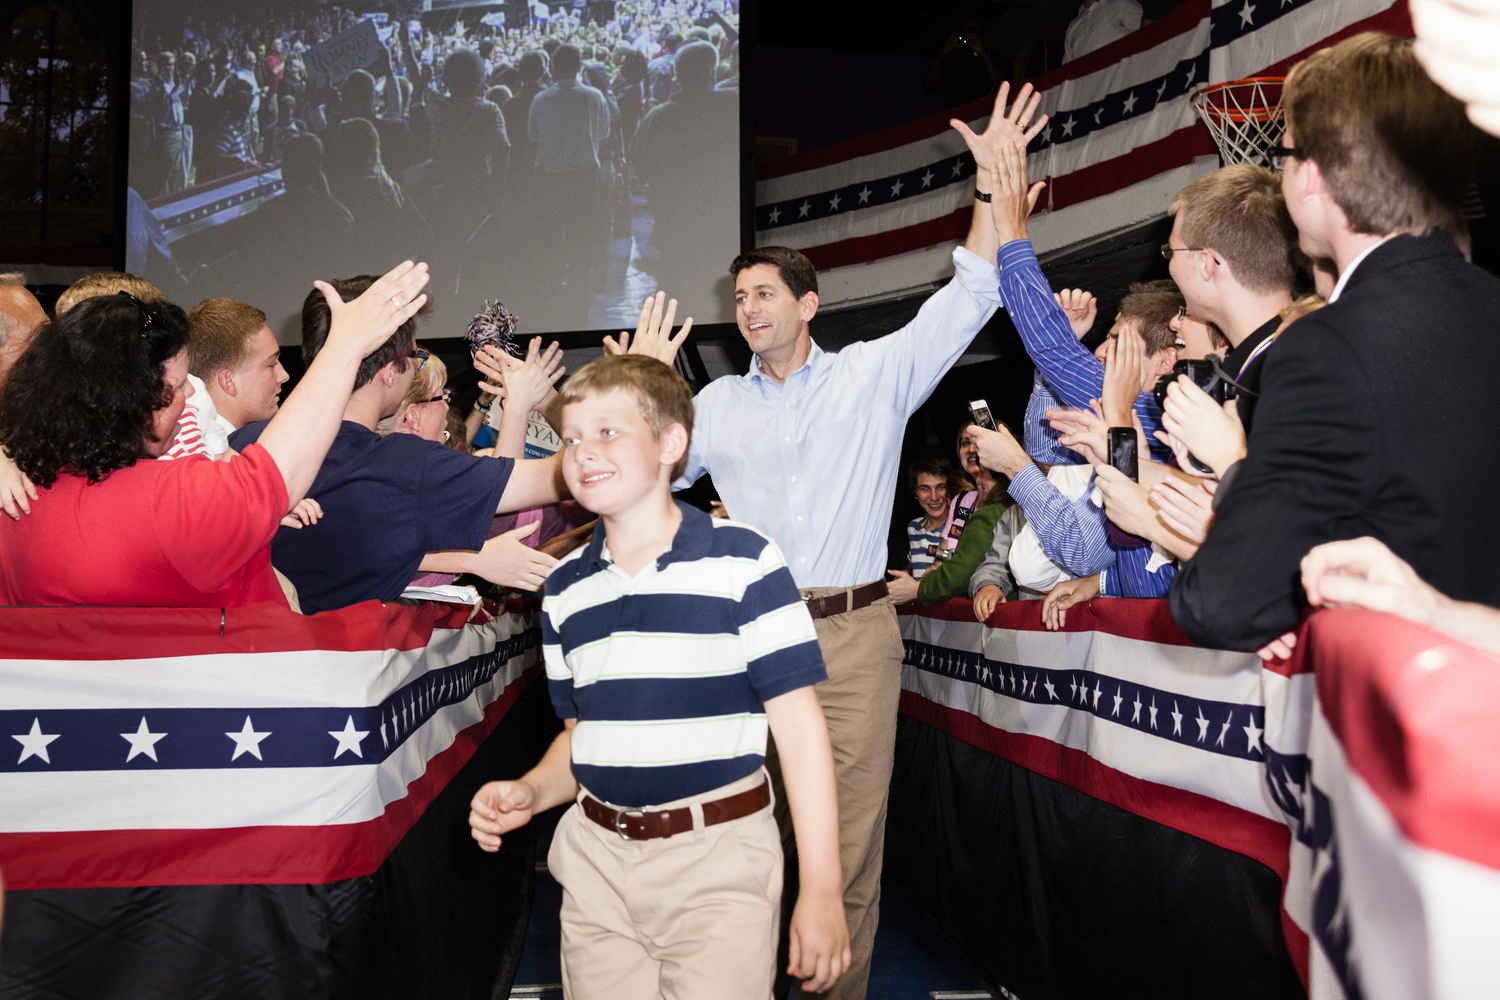 Paul Ryan and his family arrive at the Dubuque Victory Rally and Bus Tour Kickoff in Dubuque, Iowa. The event was held at the Loras College Fieldhouse. Oct. 1, 2012.